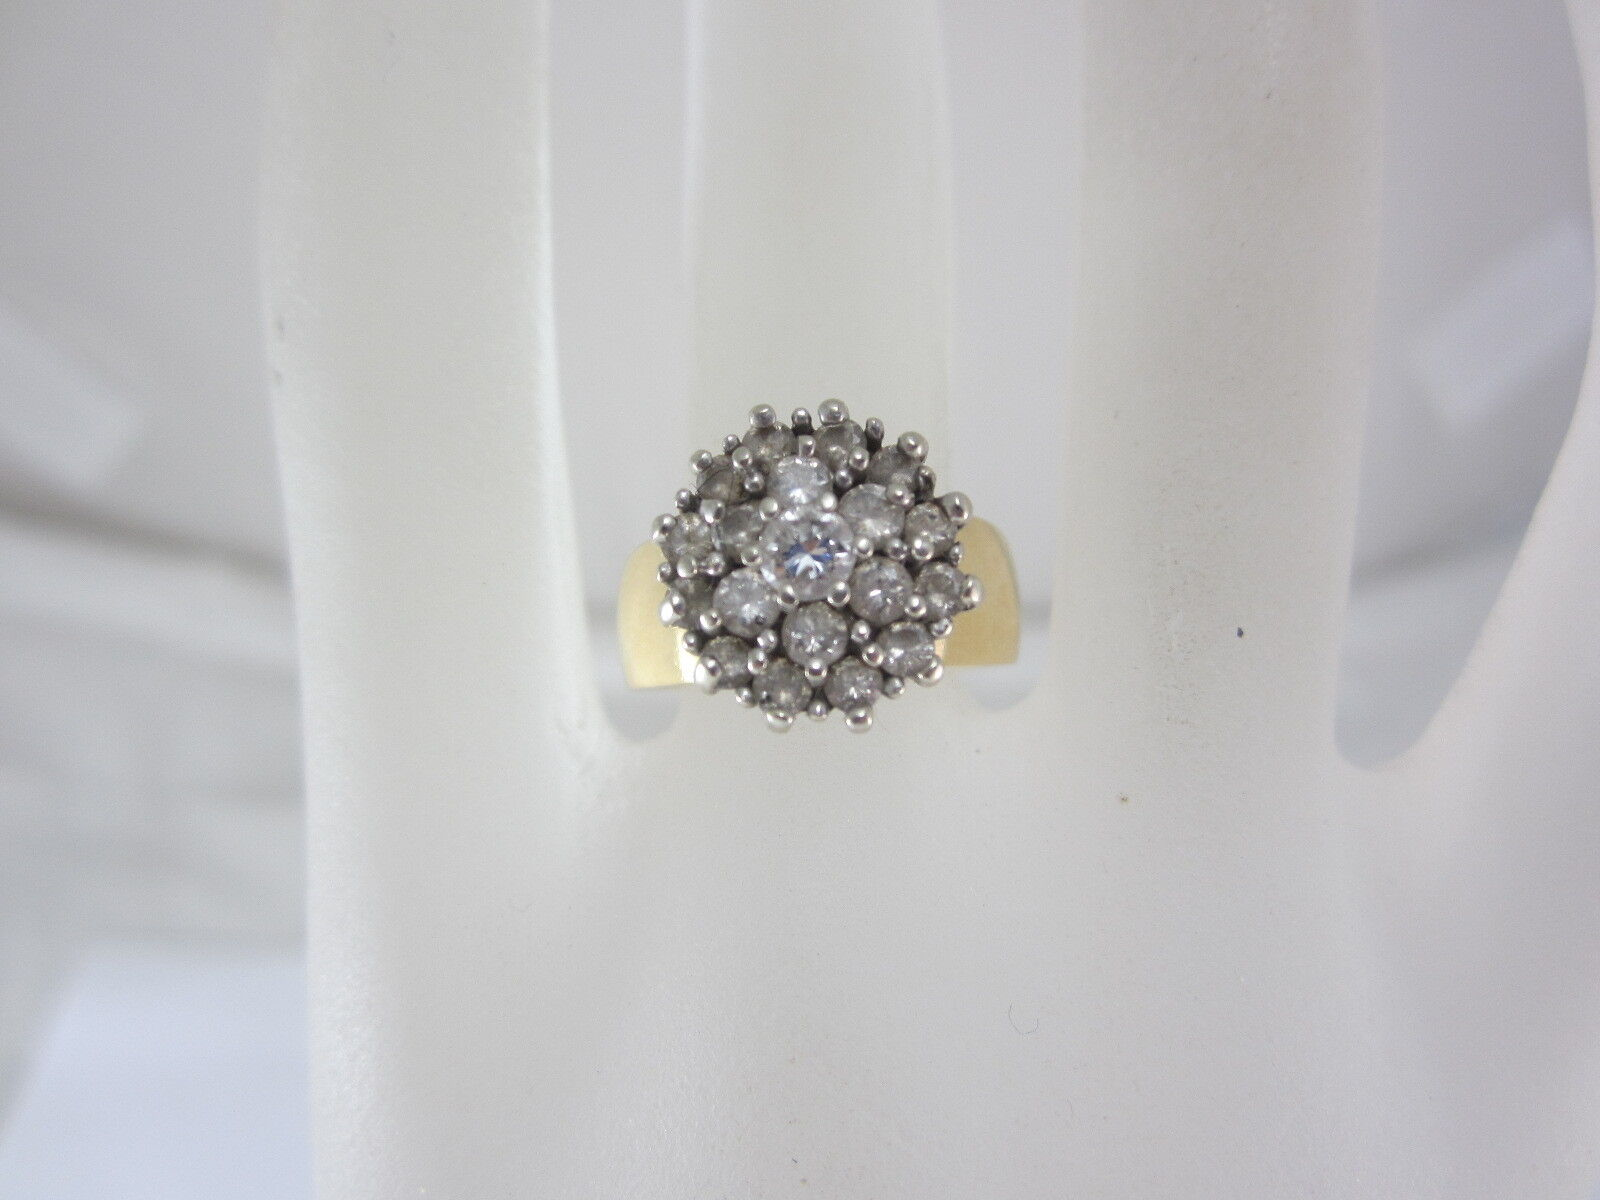 14K TWO-TONE gold DIAMOND CLUSTER RING 5.8 GRAMS 0.6CT.